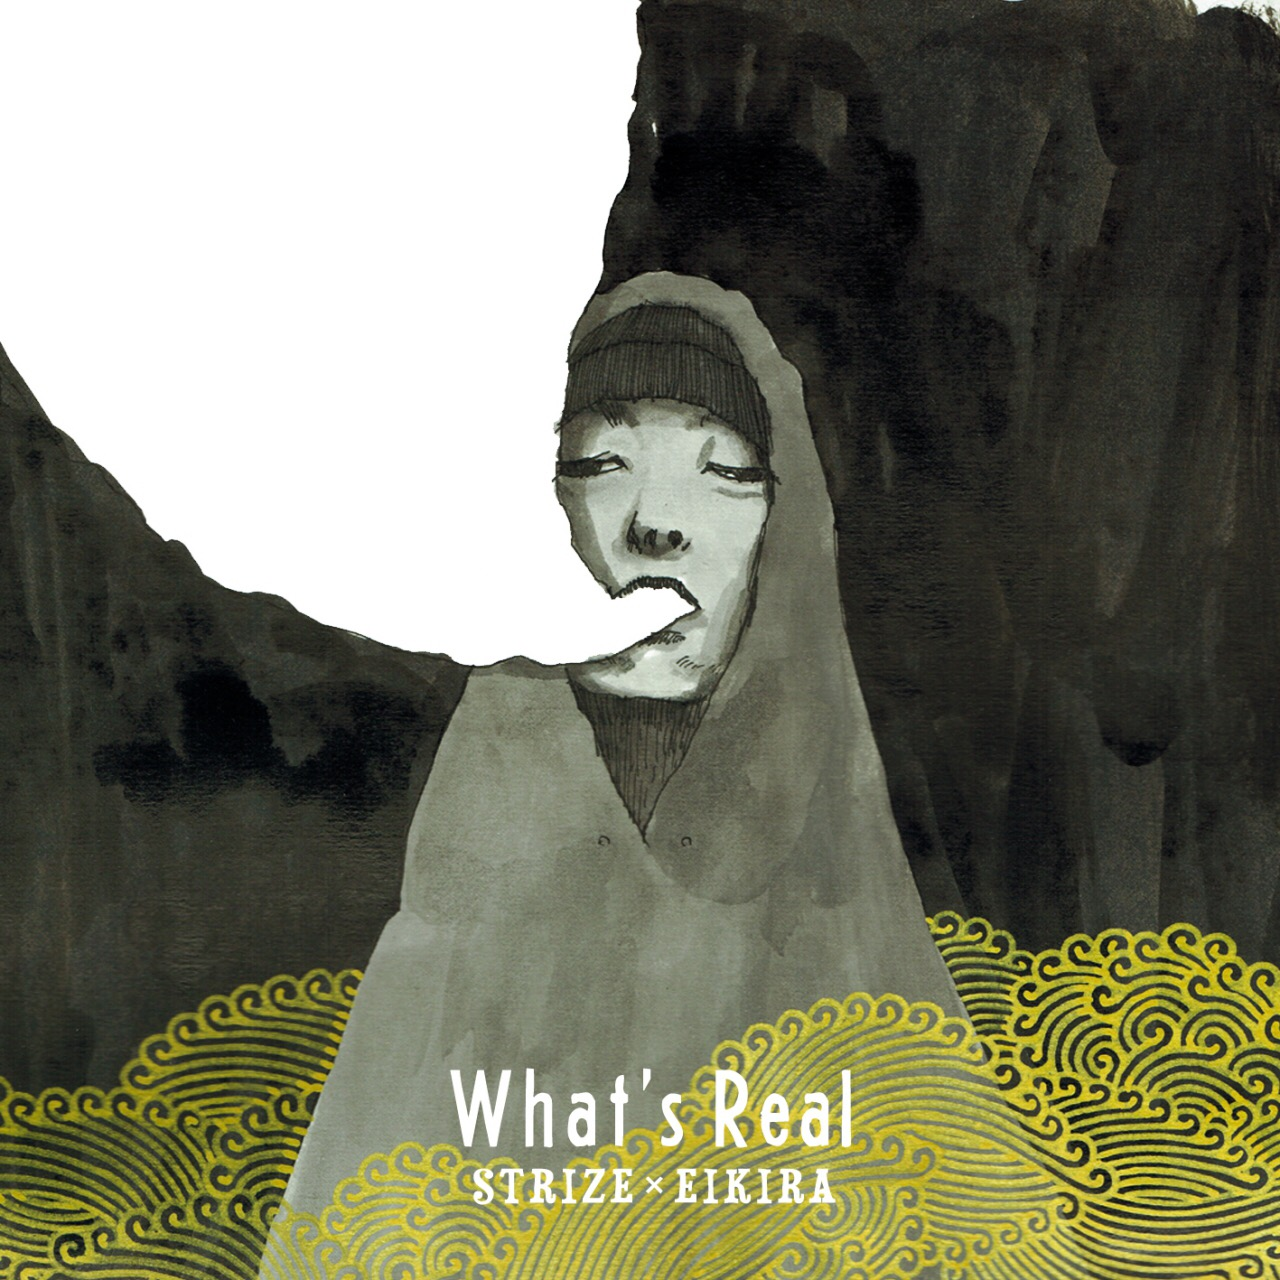 What's Real – STRIZE x EIKIRA